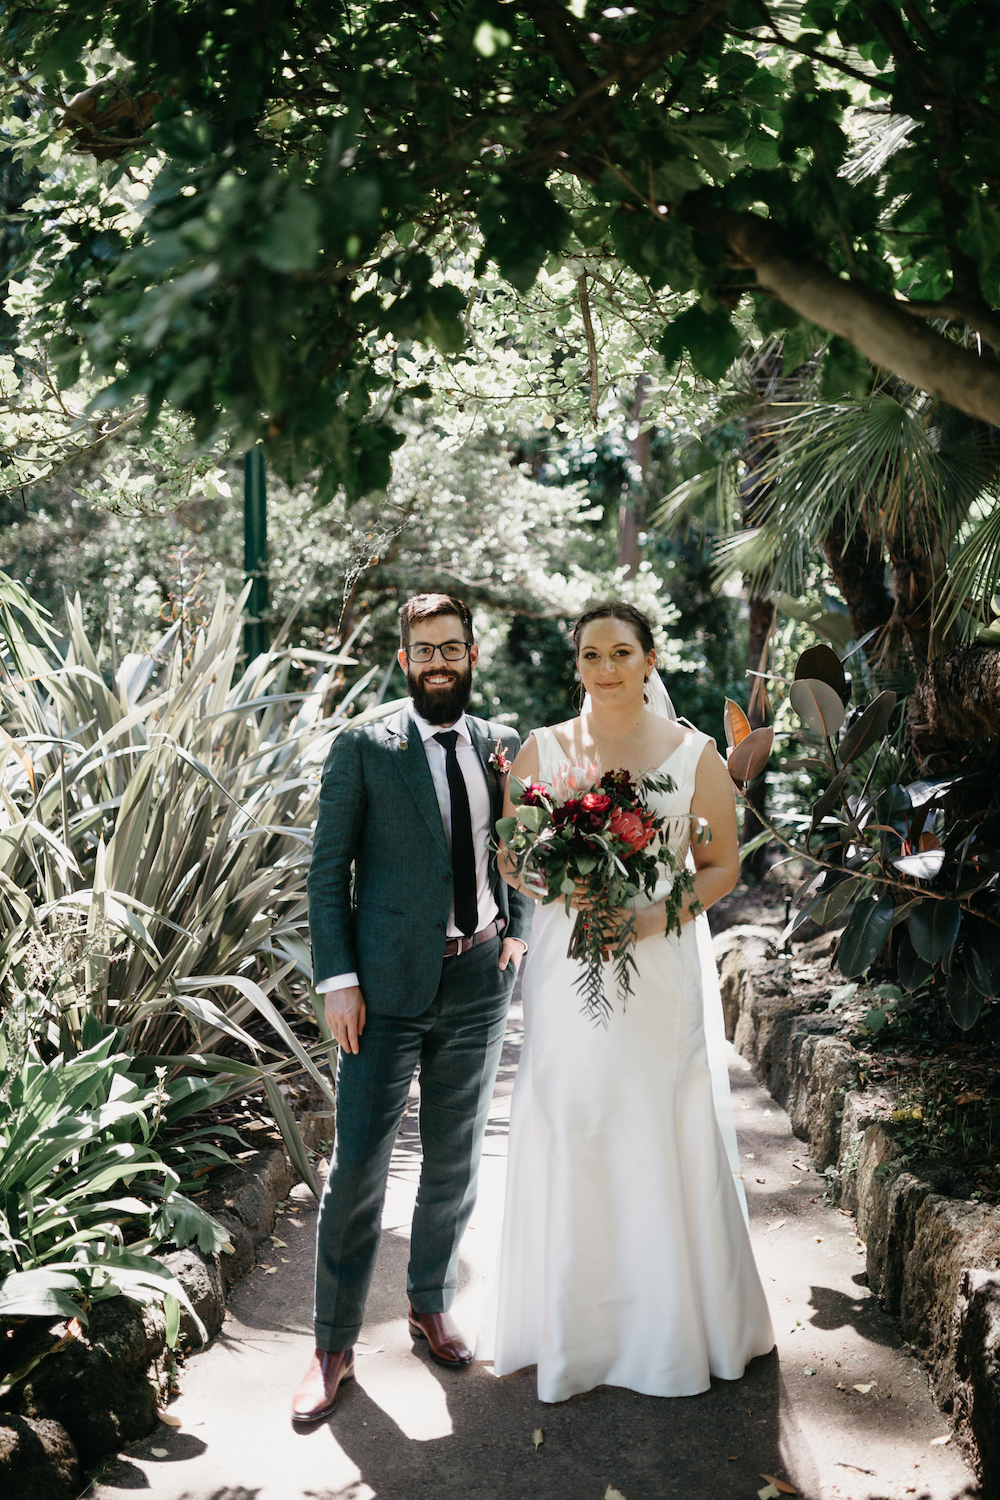 This beautiful couple tied the knot in a greenhouse in Melbourne, and the main themes were greenery and books